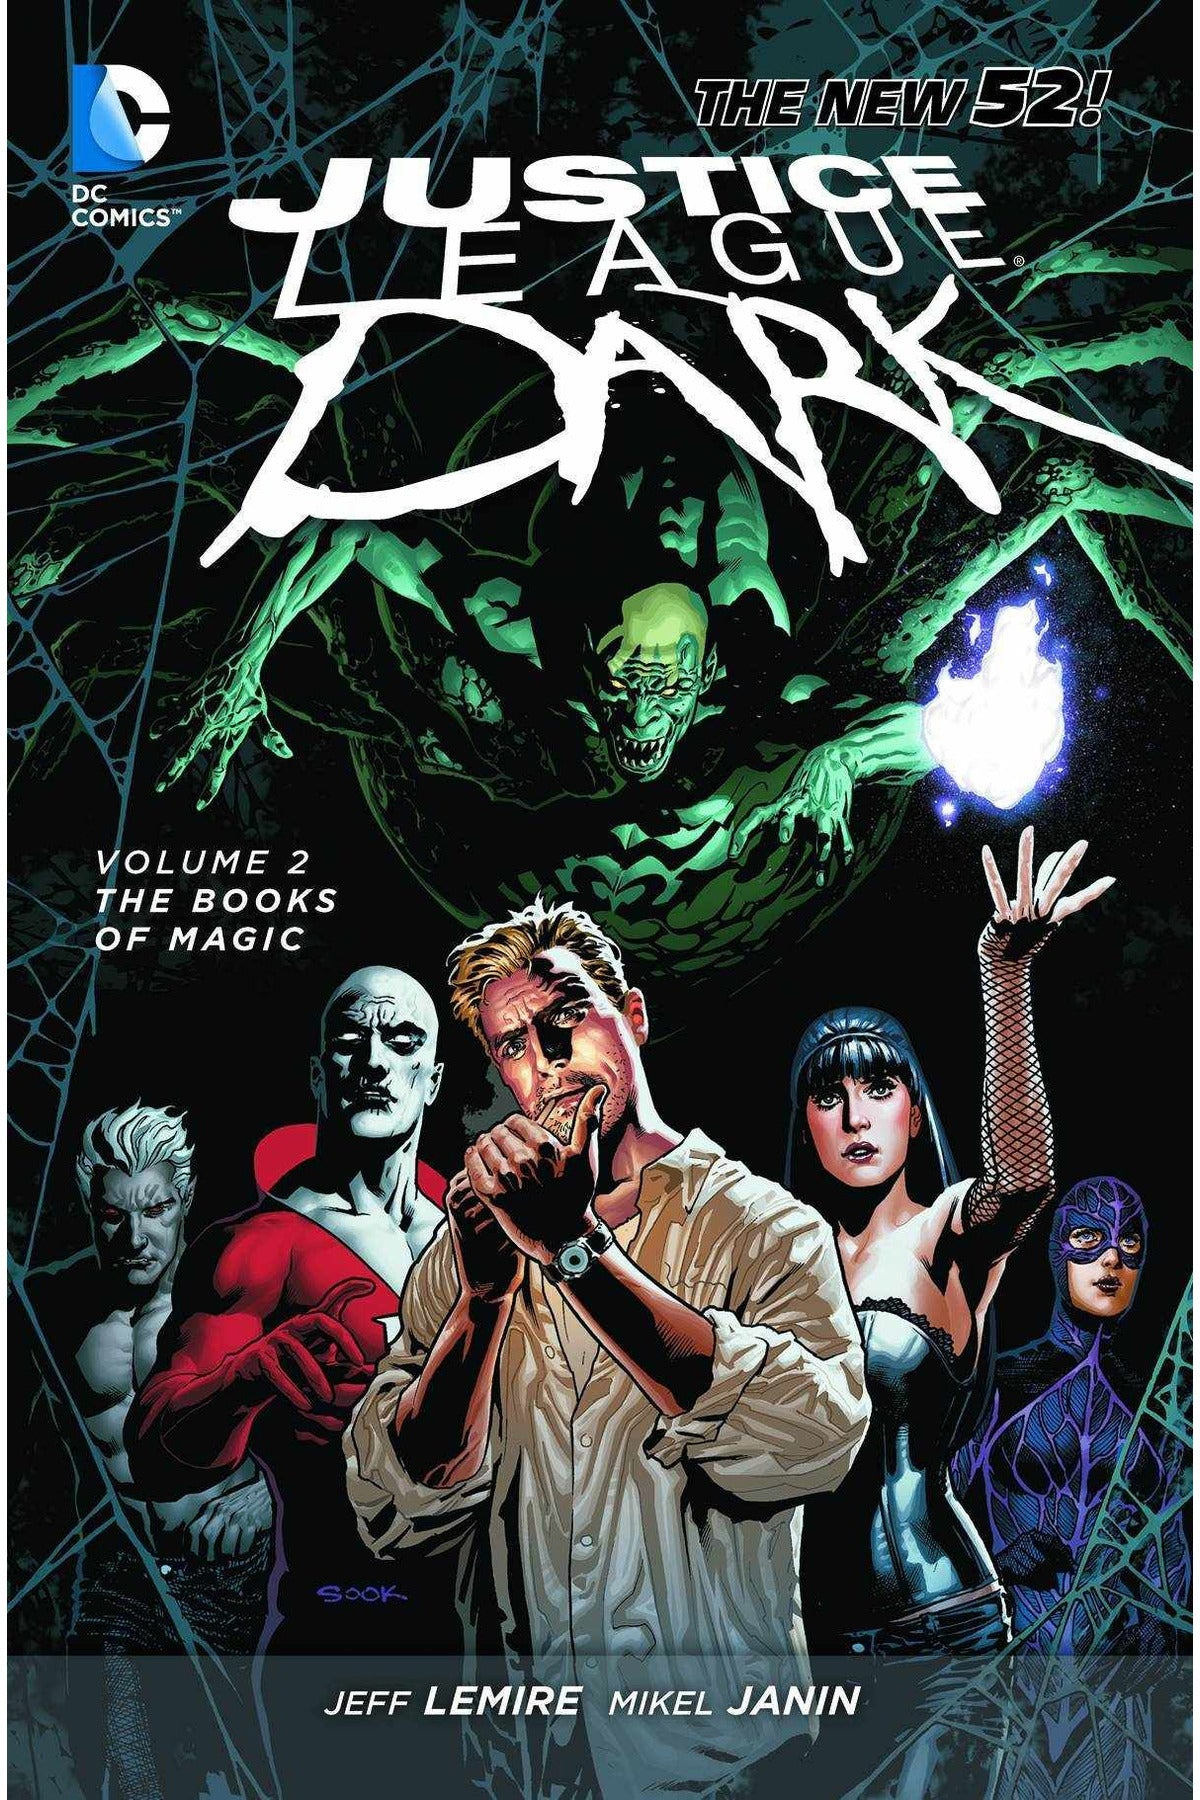 justice-league-dark-vol-2-books-of-magic-n52-diamond-9781401240240-thegamersden.com